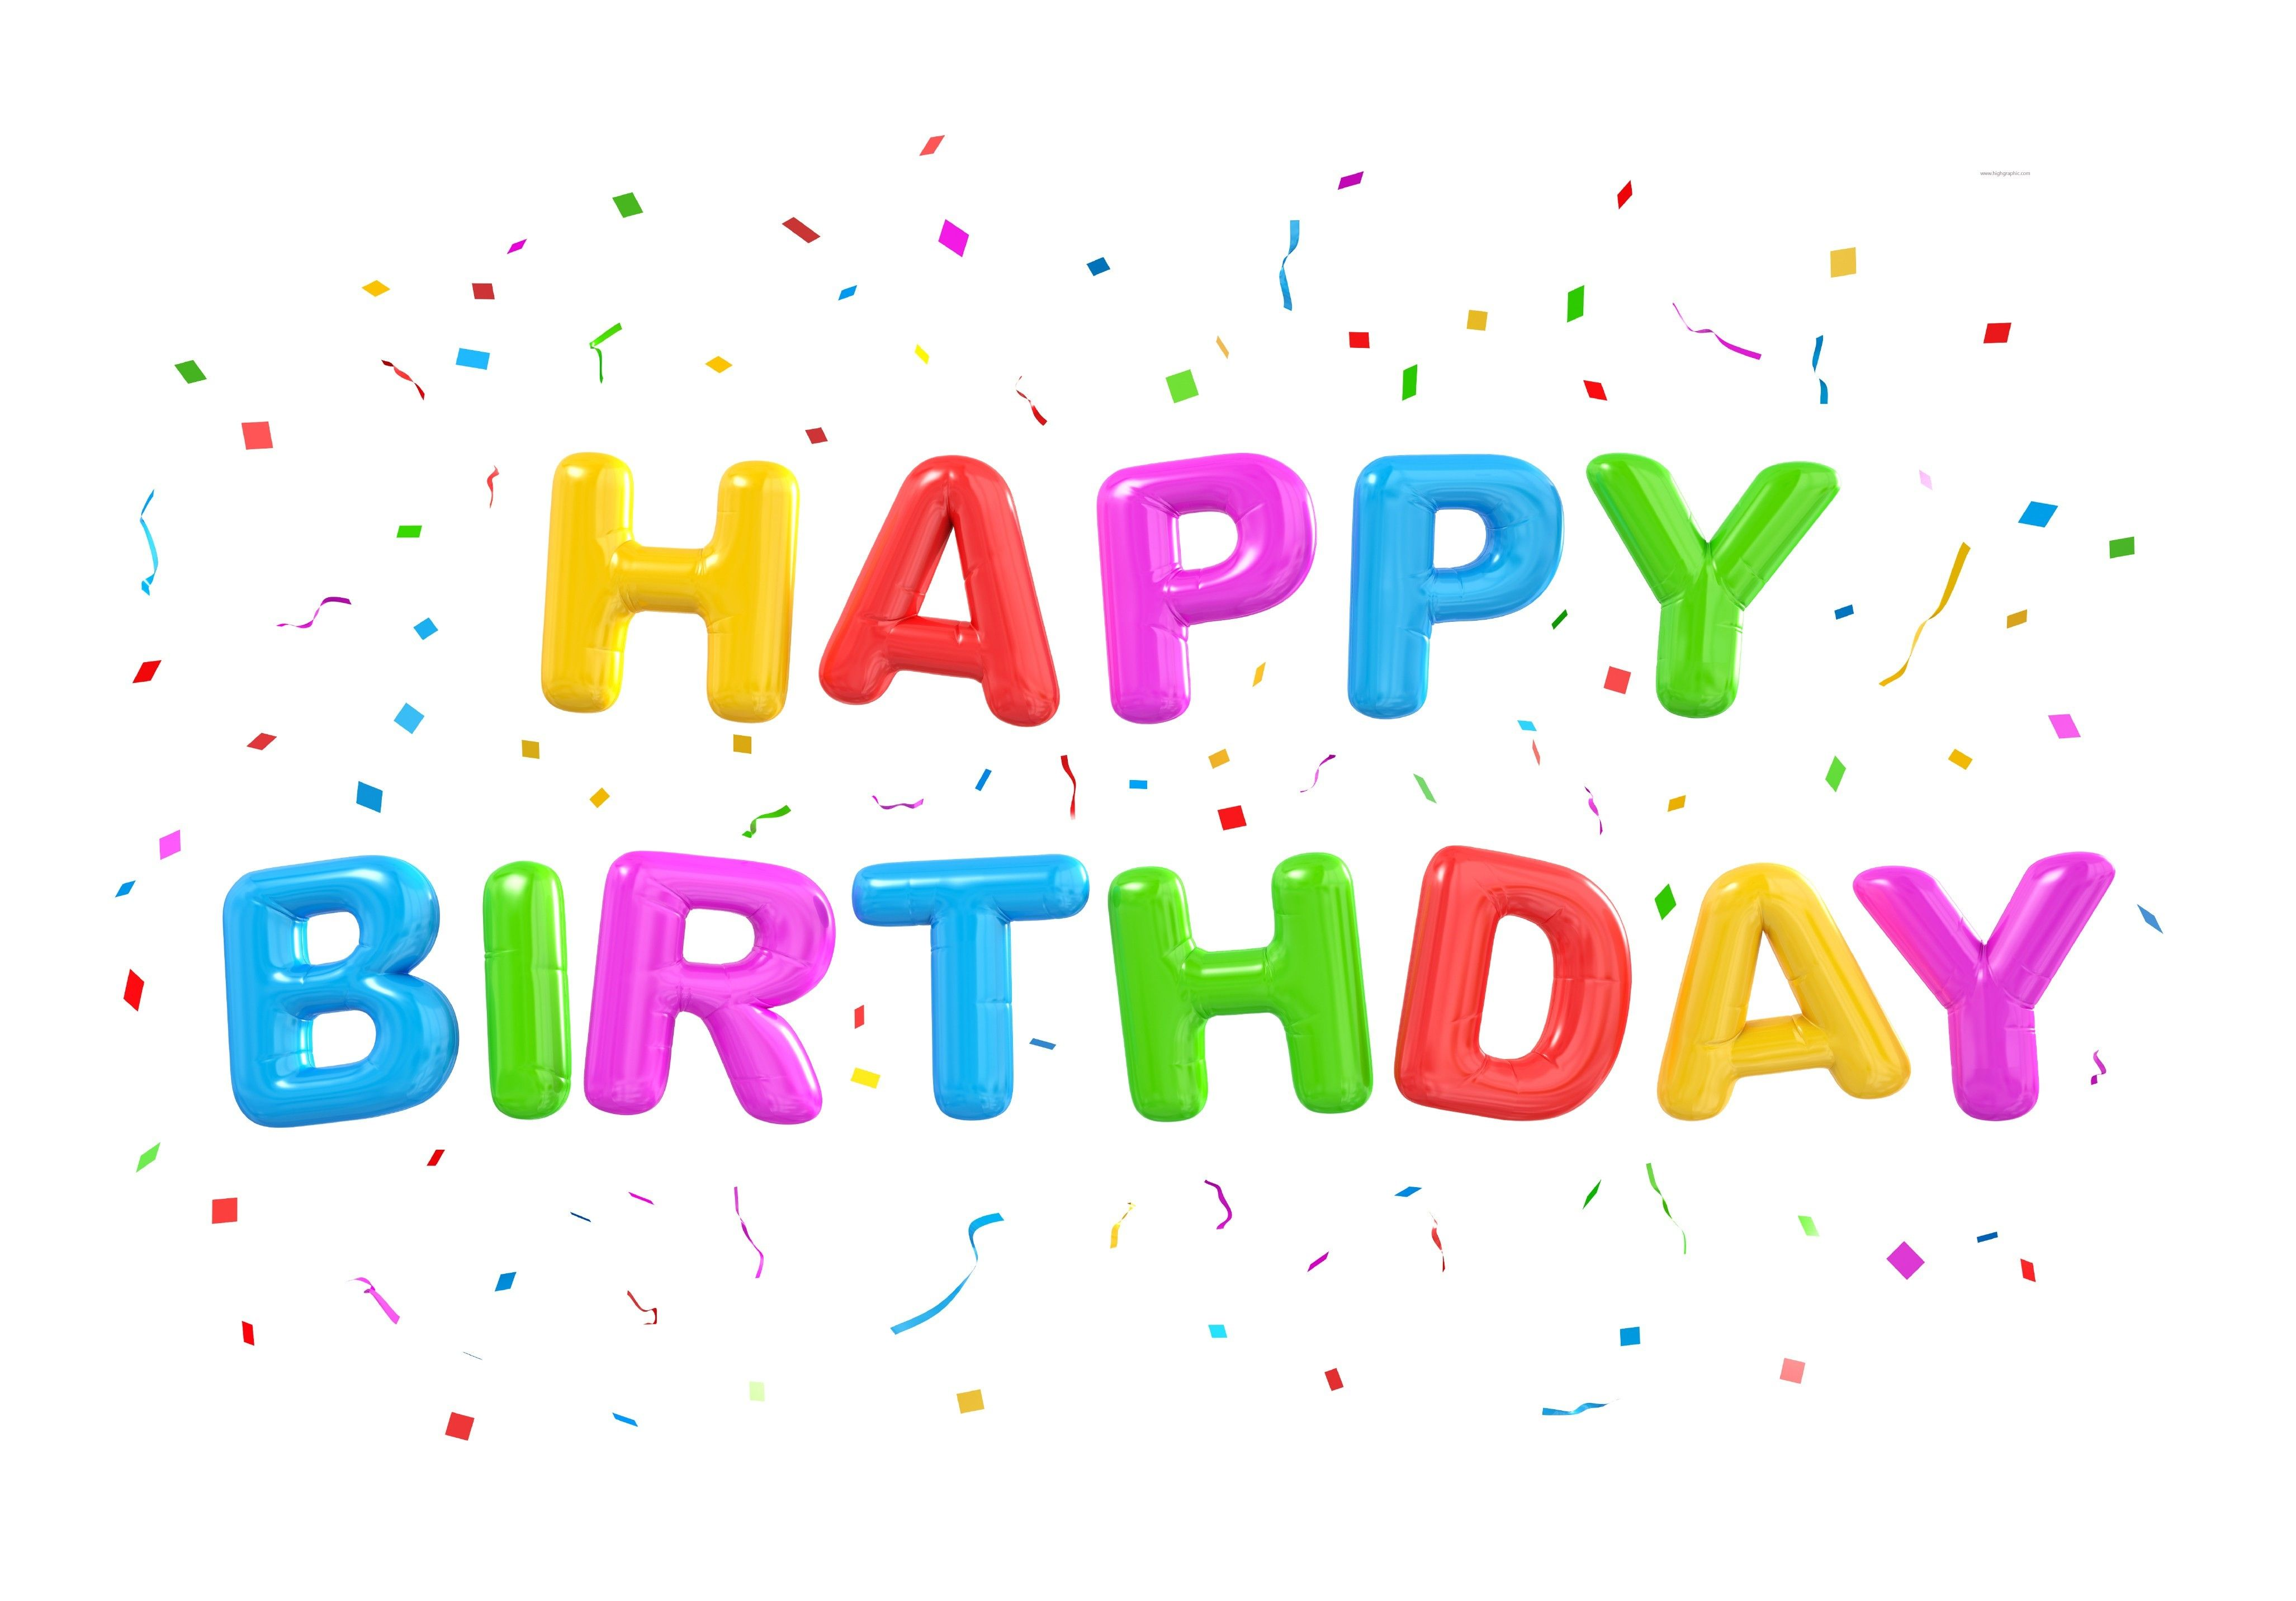 Happy Birthday Wallpapers Free Download For Mobile 5